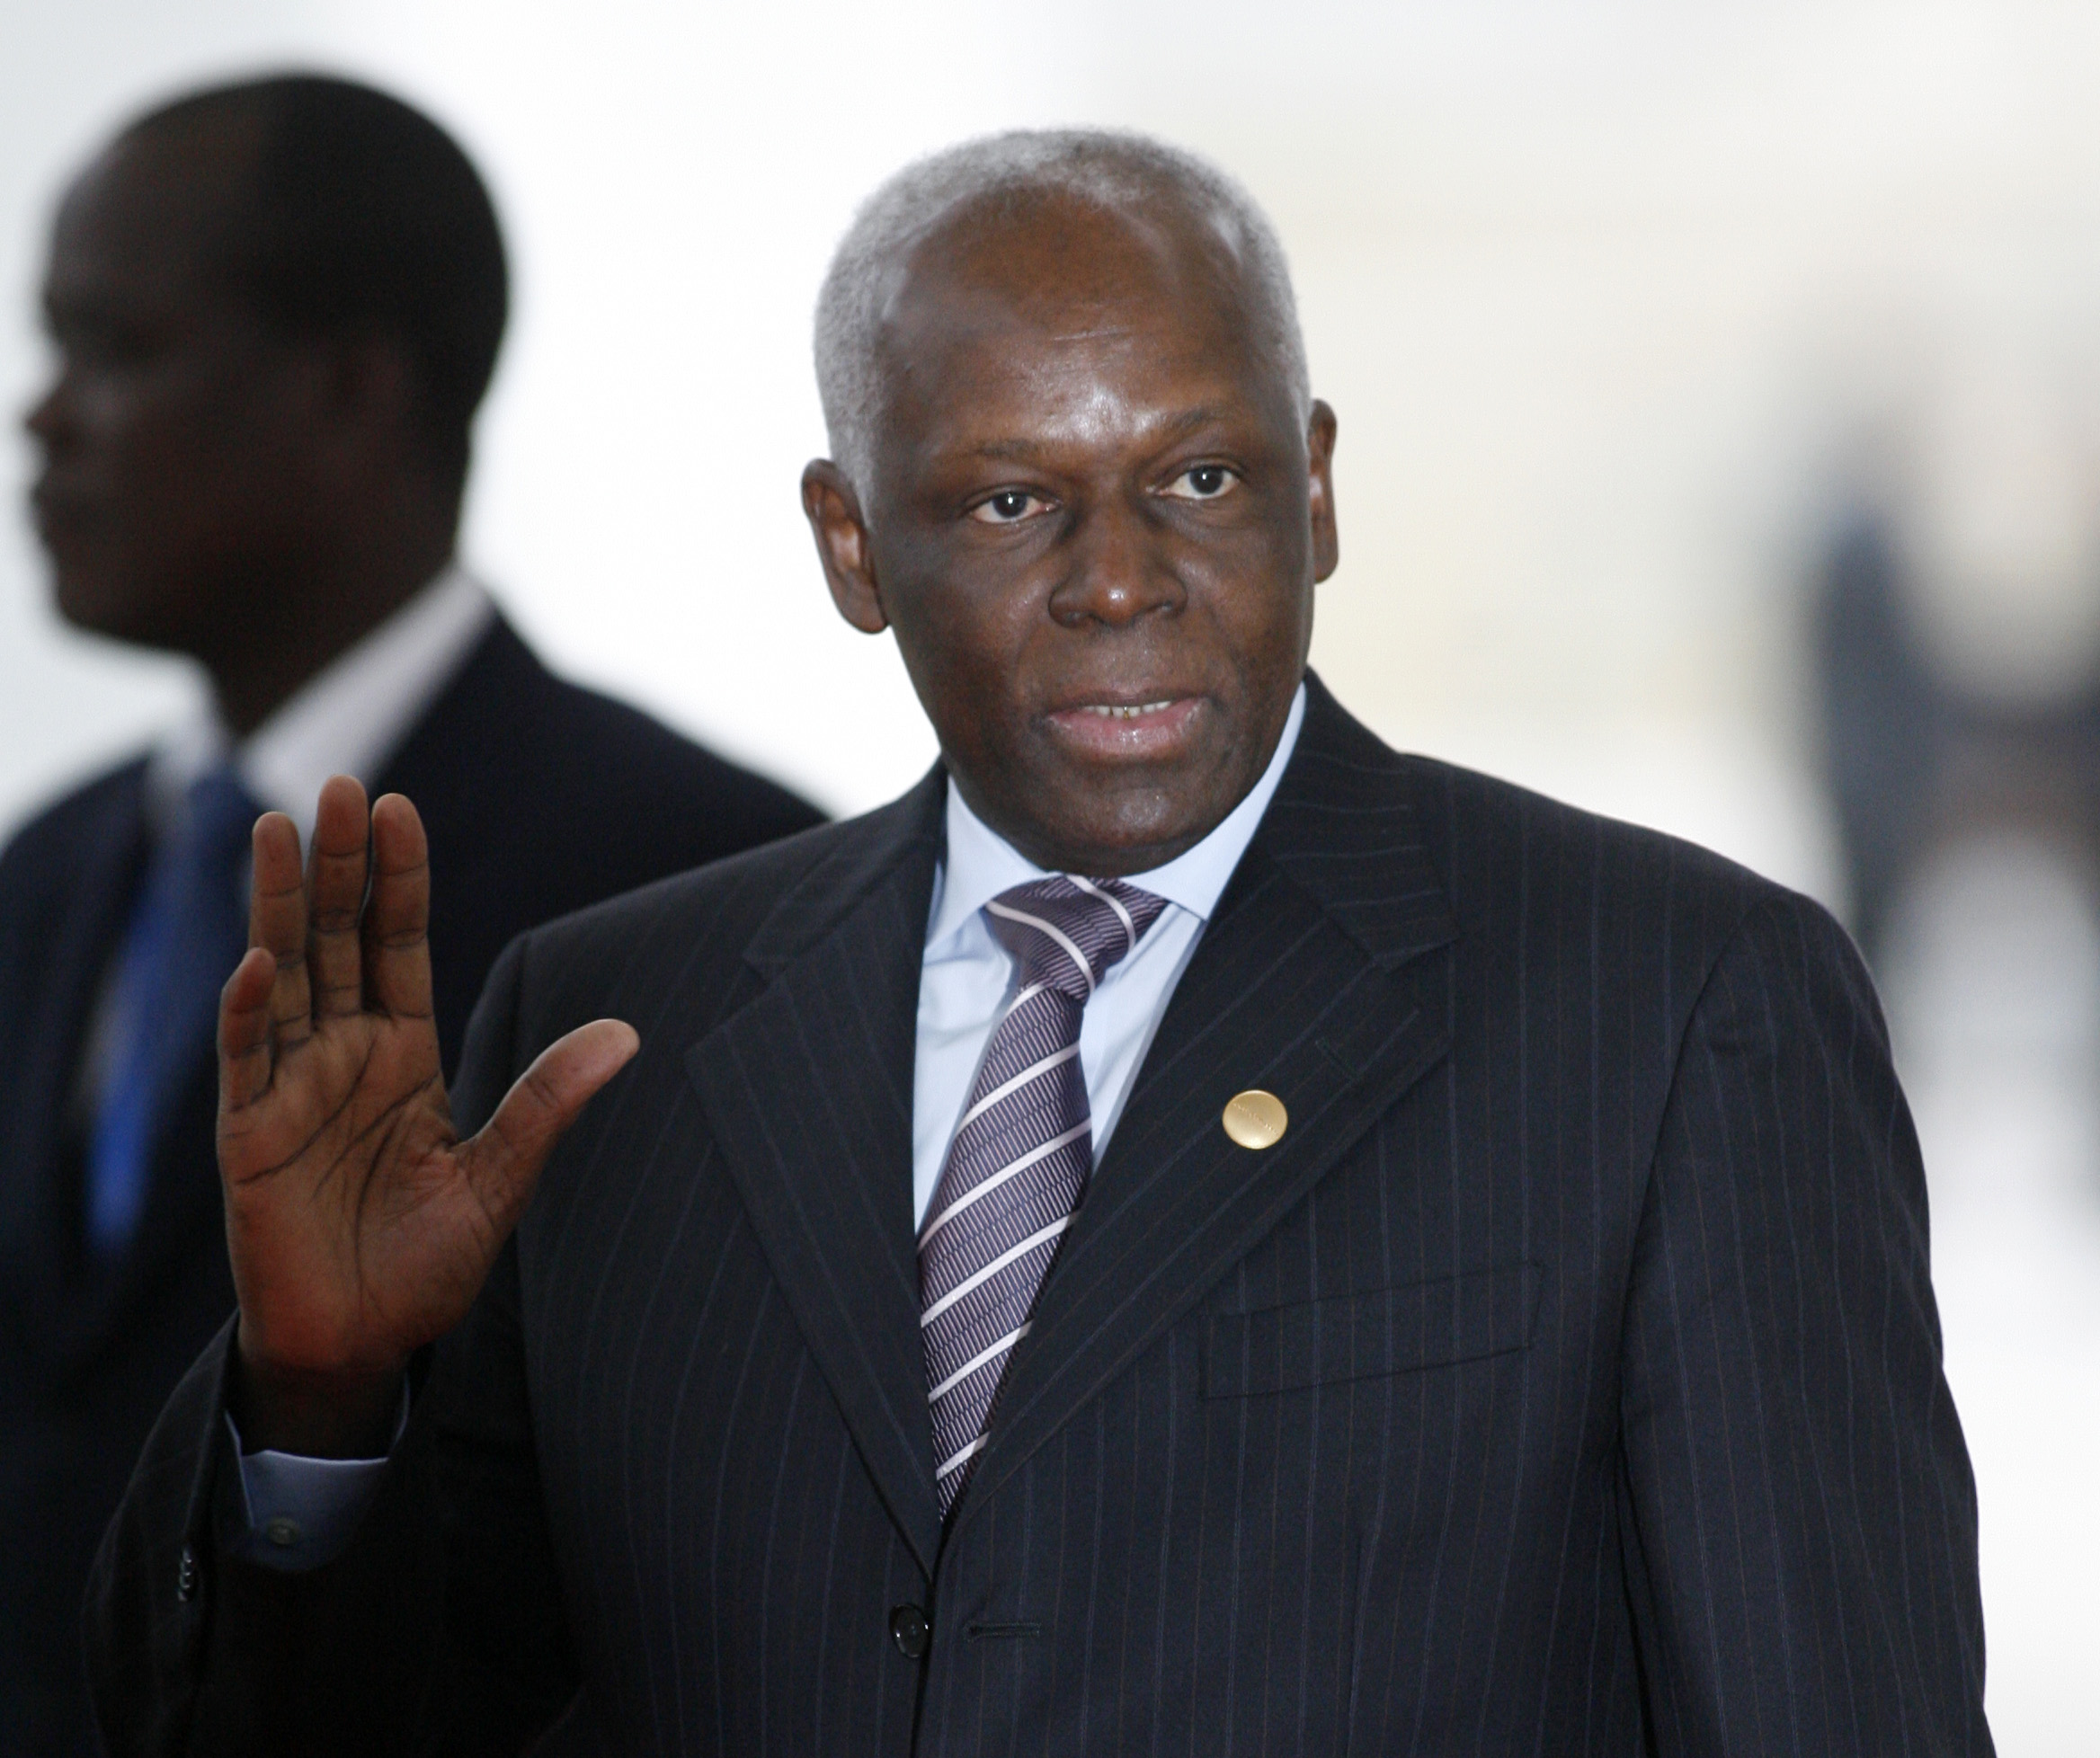 President Jose Eduardo dos Santos arrives for an EU Africa Summit in Lisbon, Sunday Dec. 9, 2007. European and African leaders are scheduled to sign a strategic partnership agreement on Sunday, after a two-day summit marked by tensions over human rights in Zimbabwe.